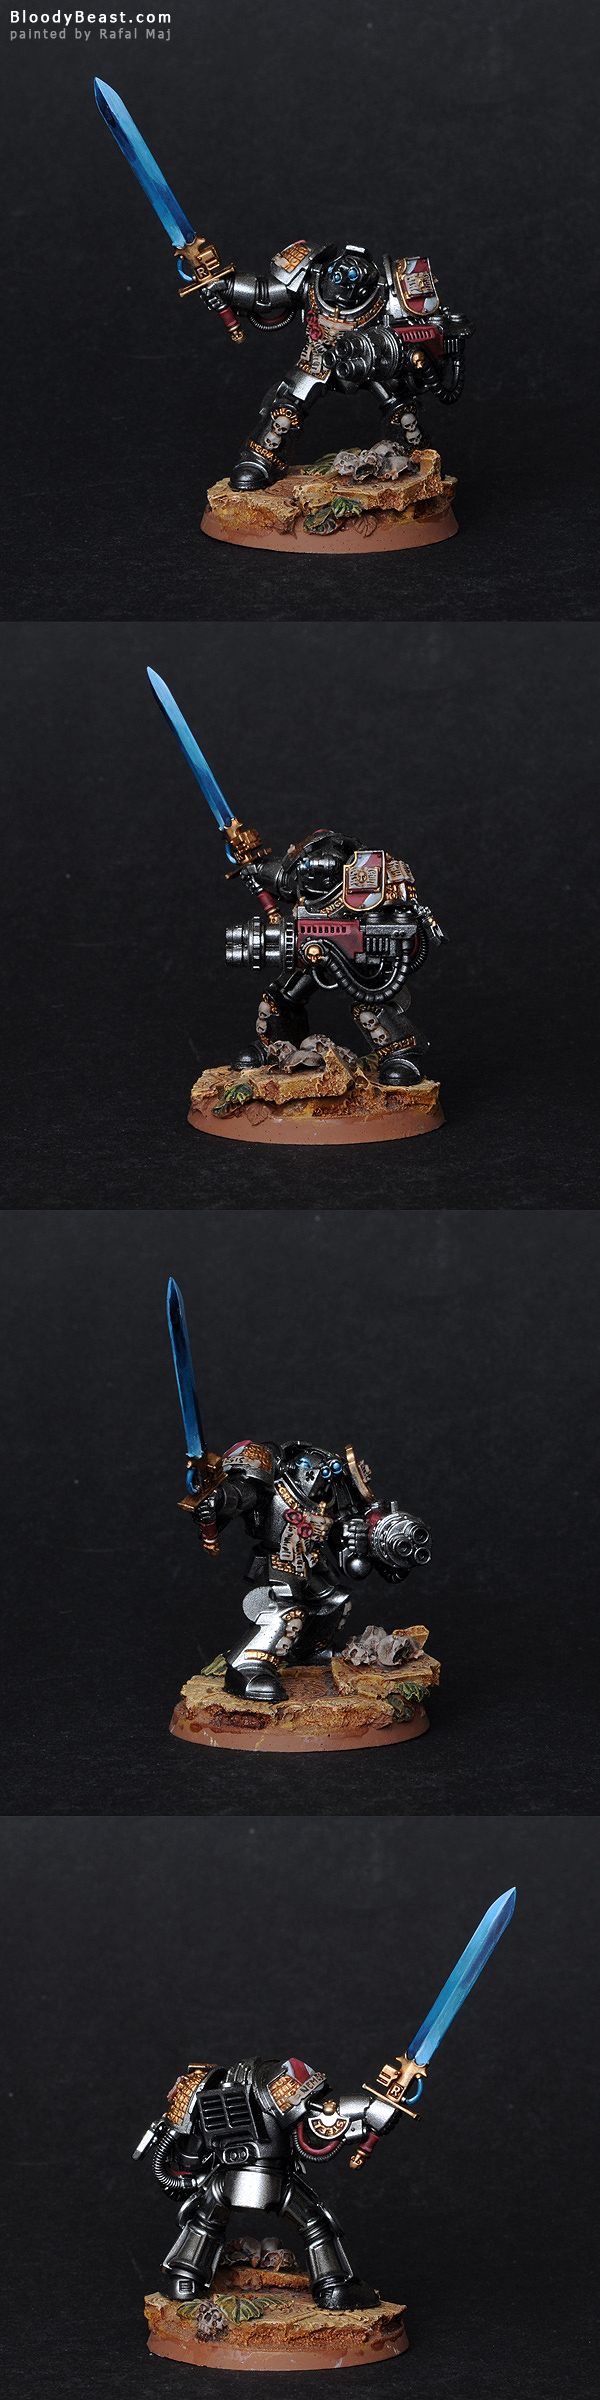 Grey Knight Terminator with Heavy Weapon painted by Rafal Maj (BloodyBeast.com)